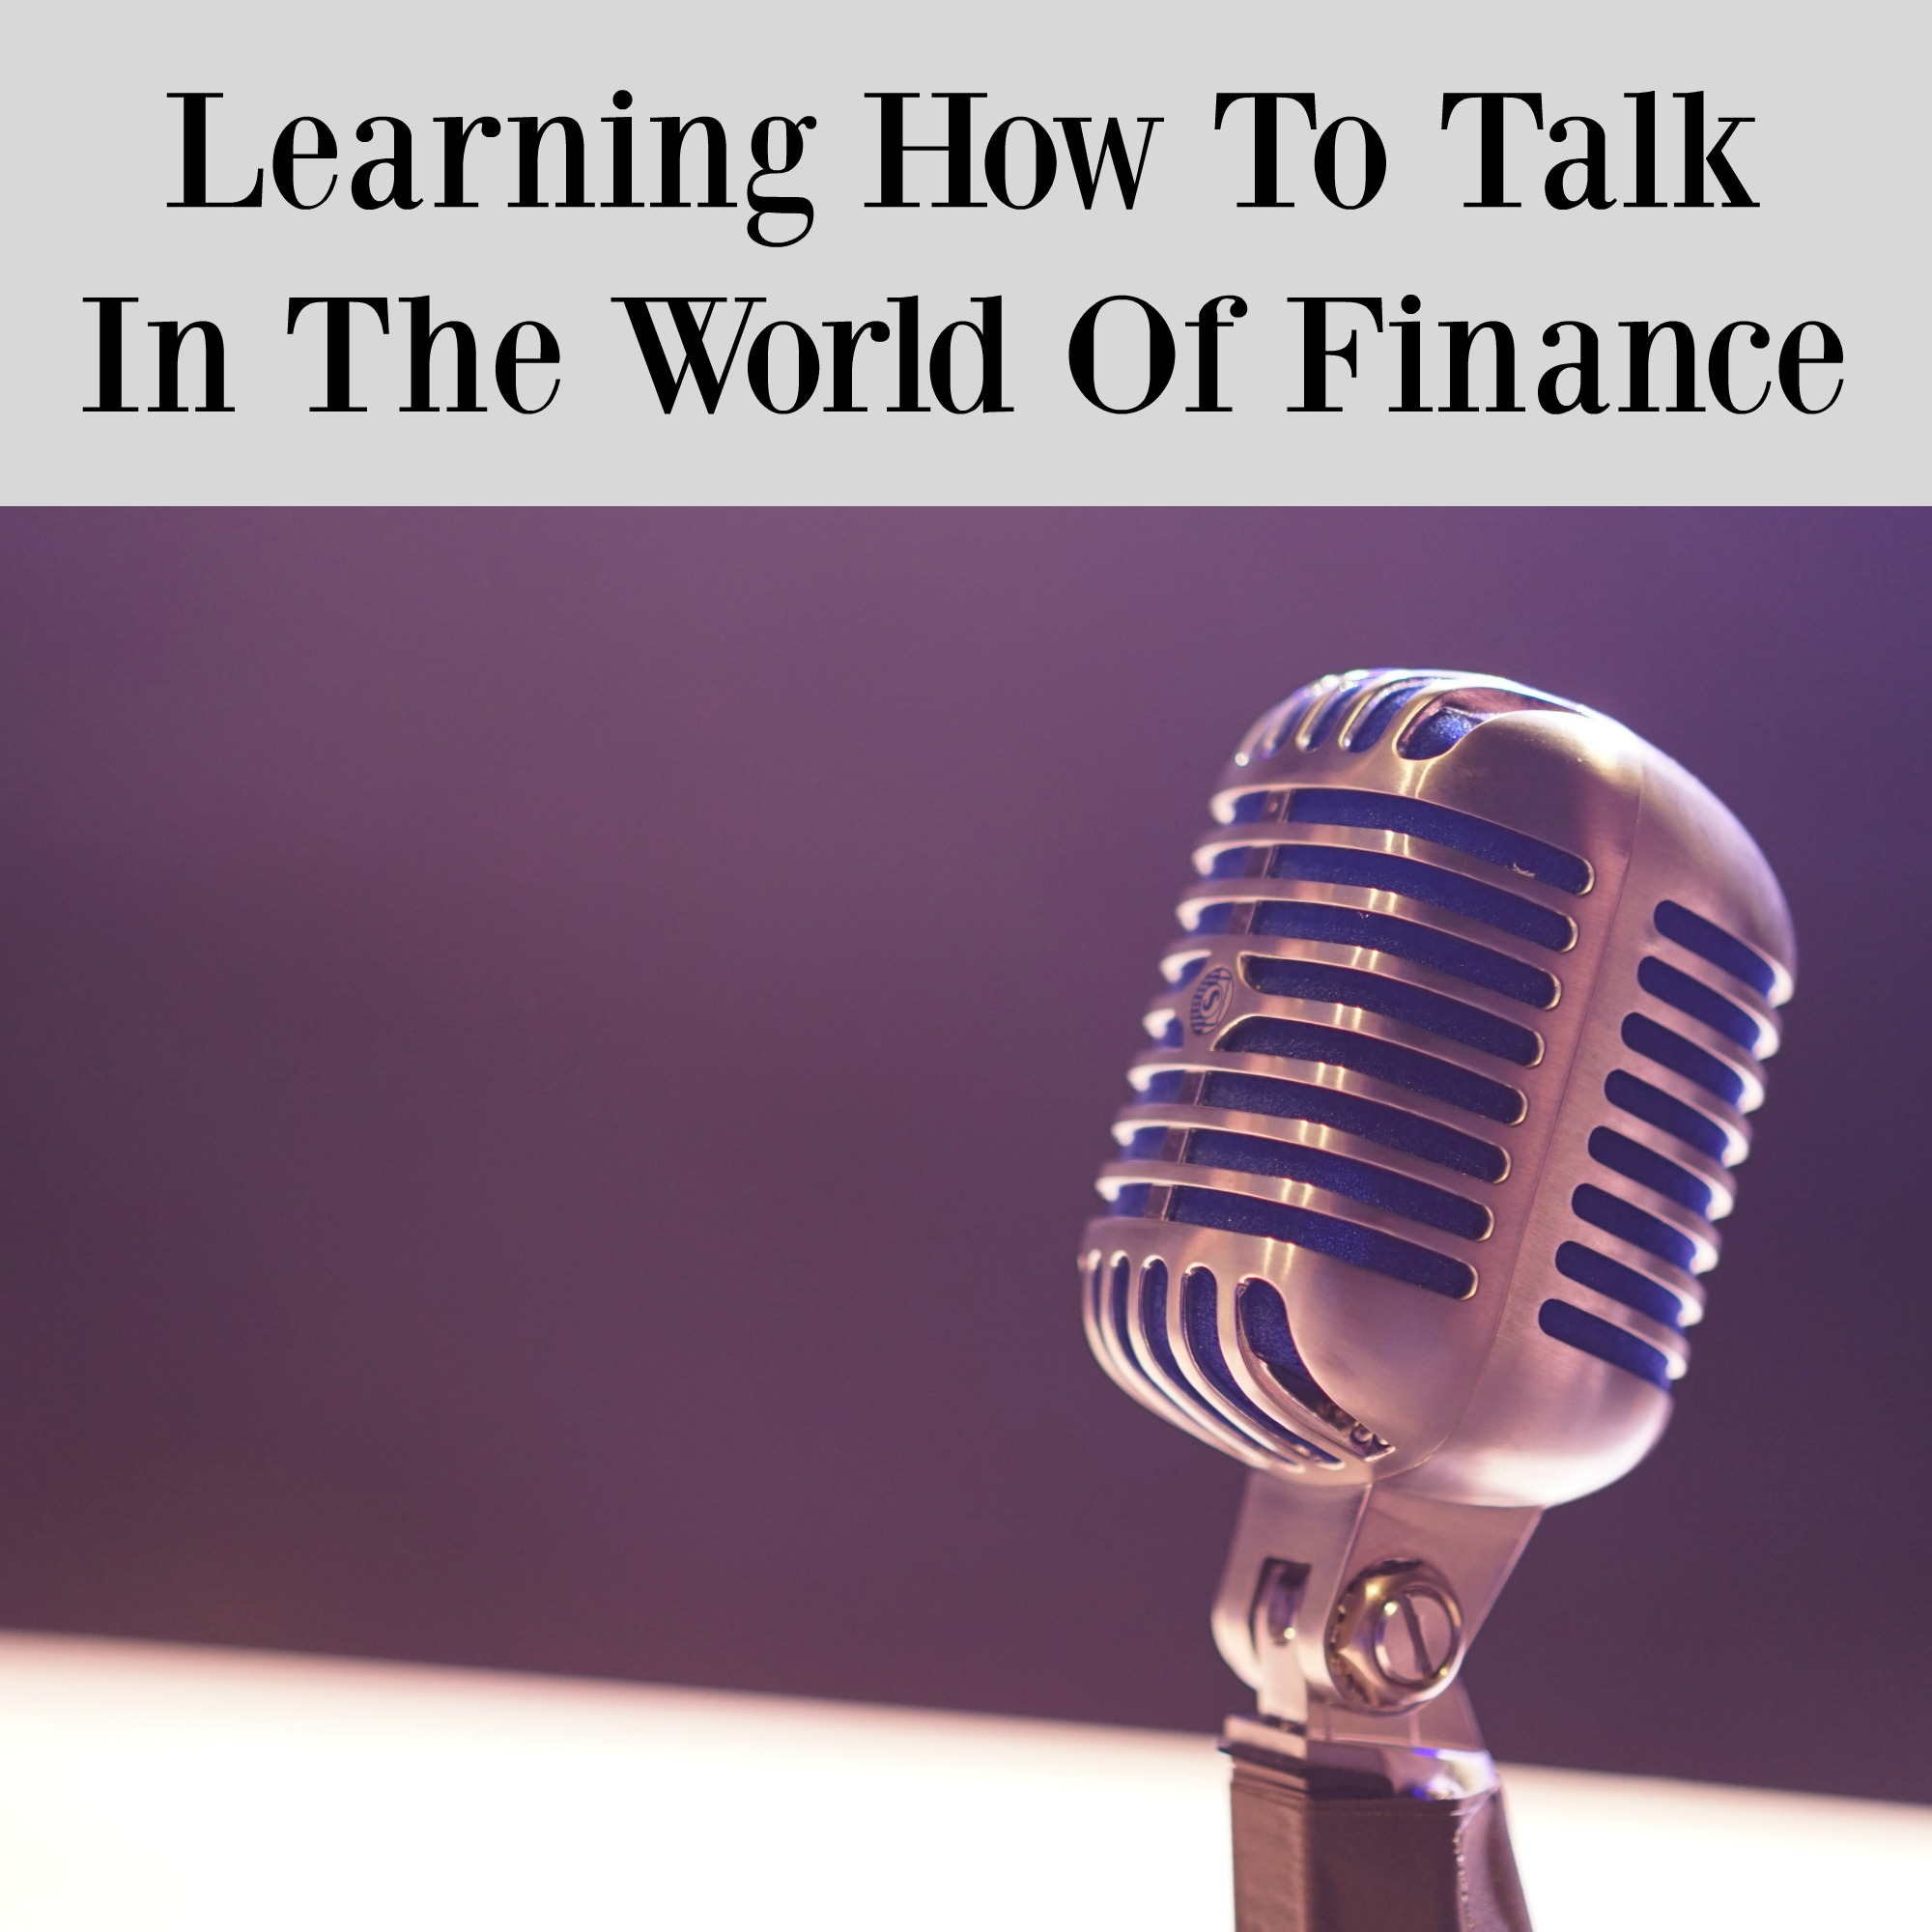 Learning How To Talk In The World Of Finance